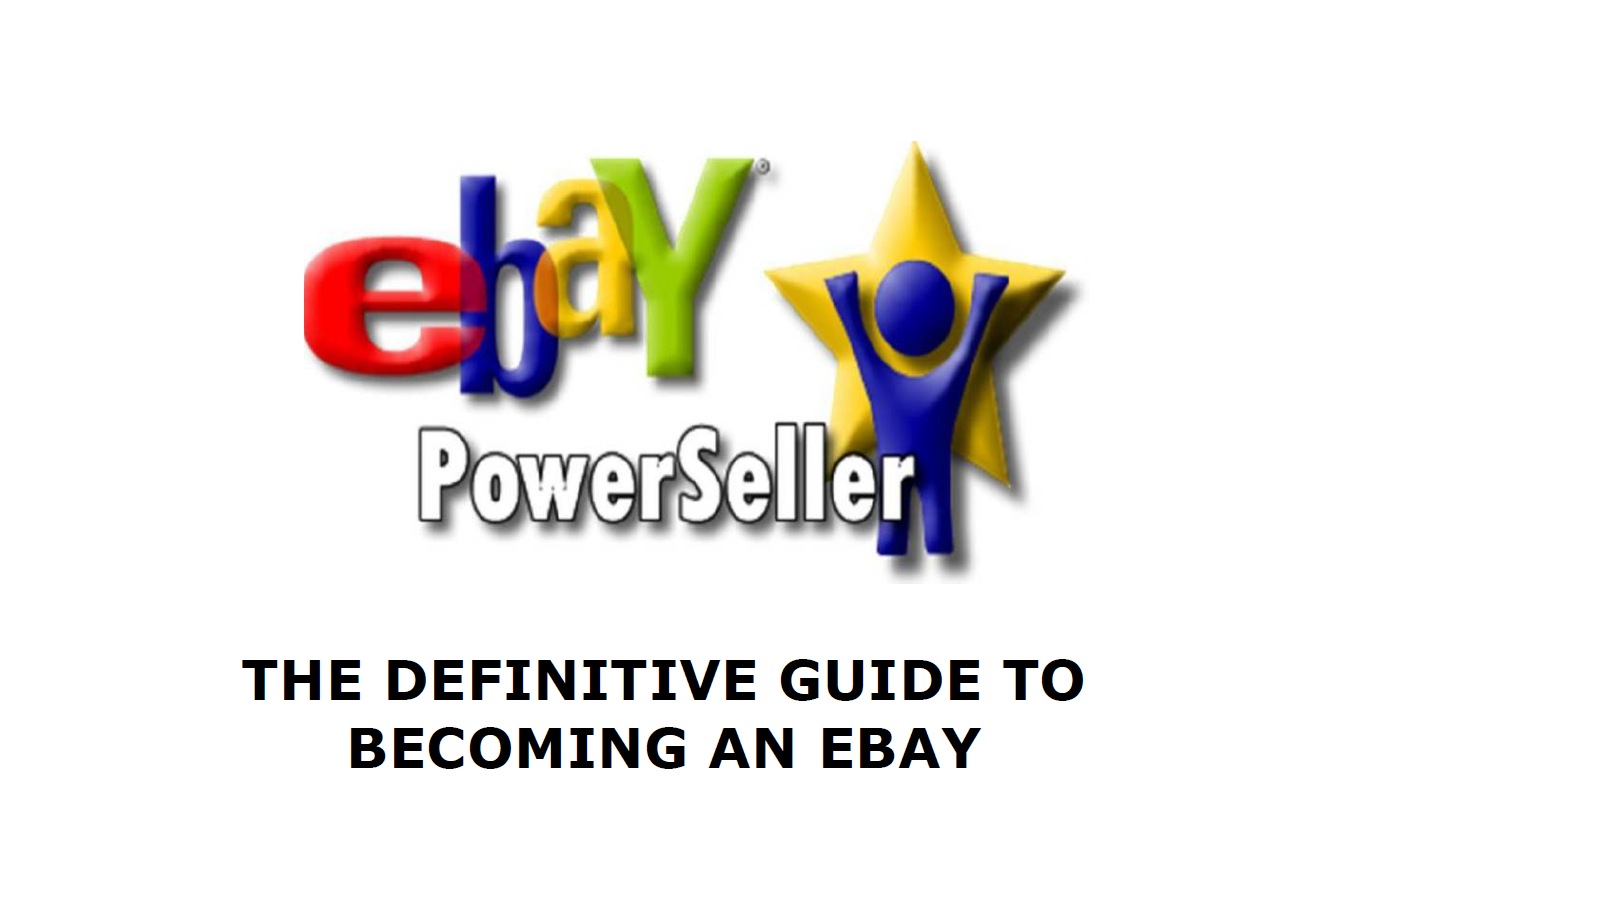 show how to becoming an ebay powerseller